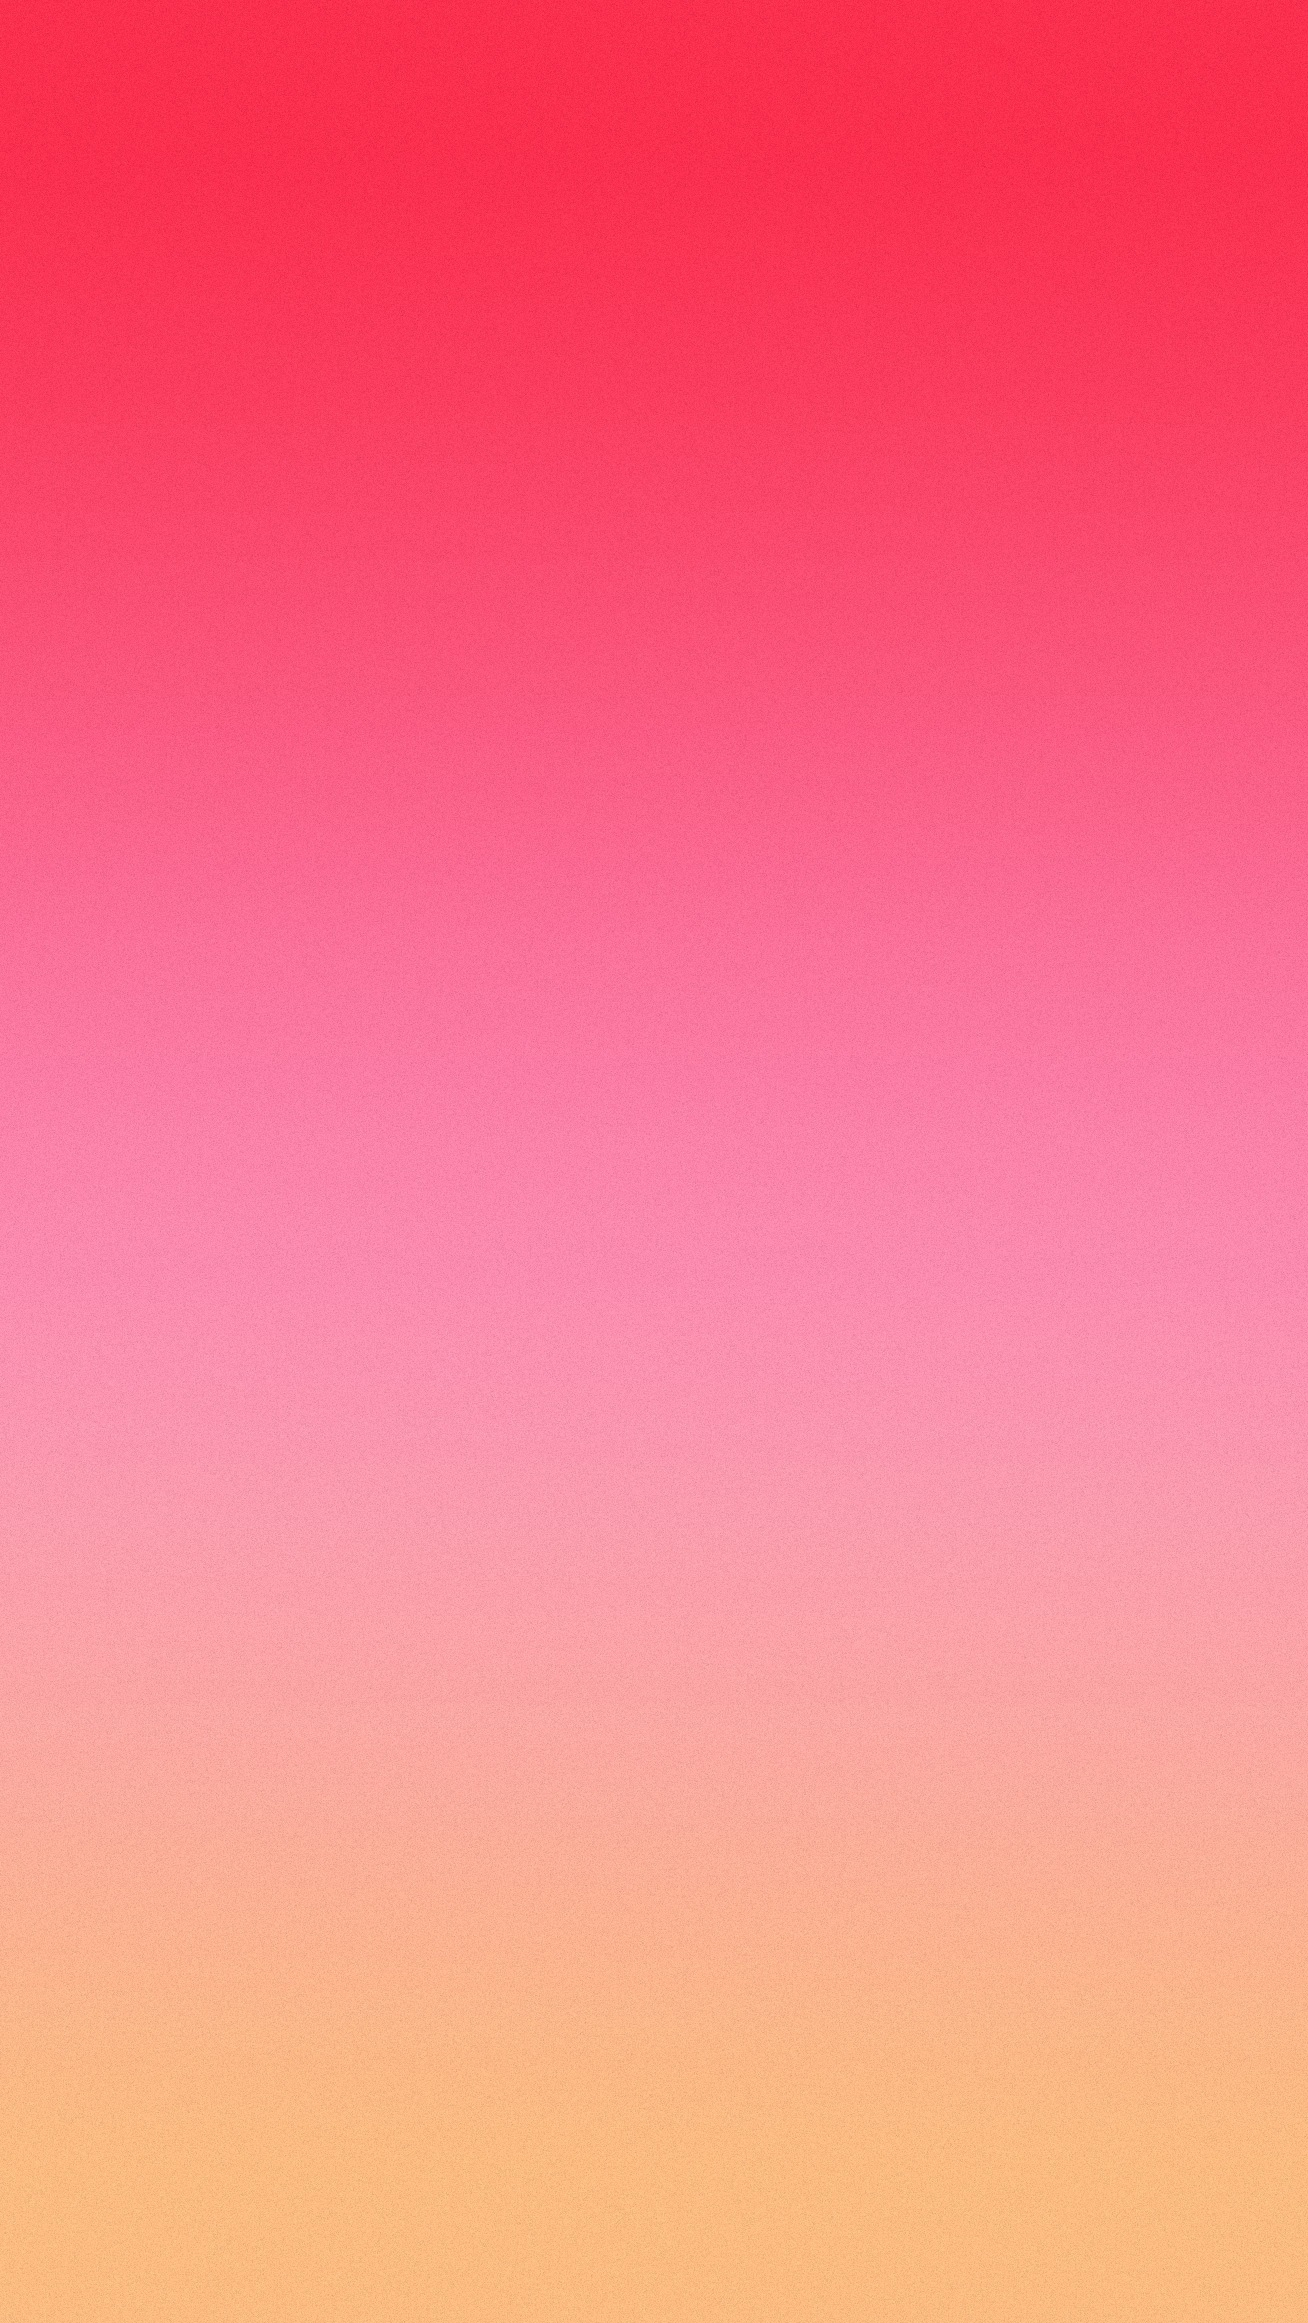 Animated Love Couple Wallpapers Beautiful Pink Orange Gradient Background Iphone Wallpaper